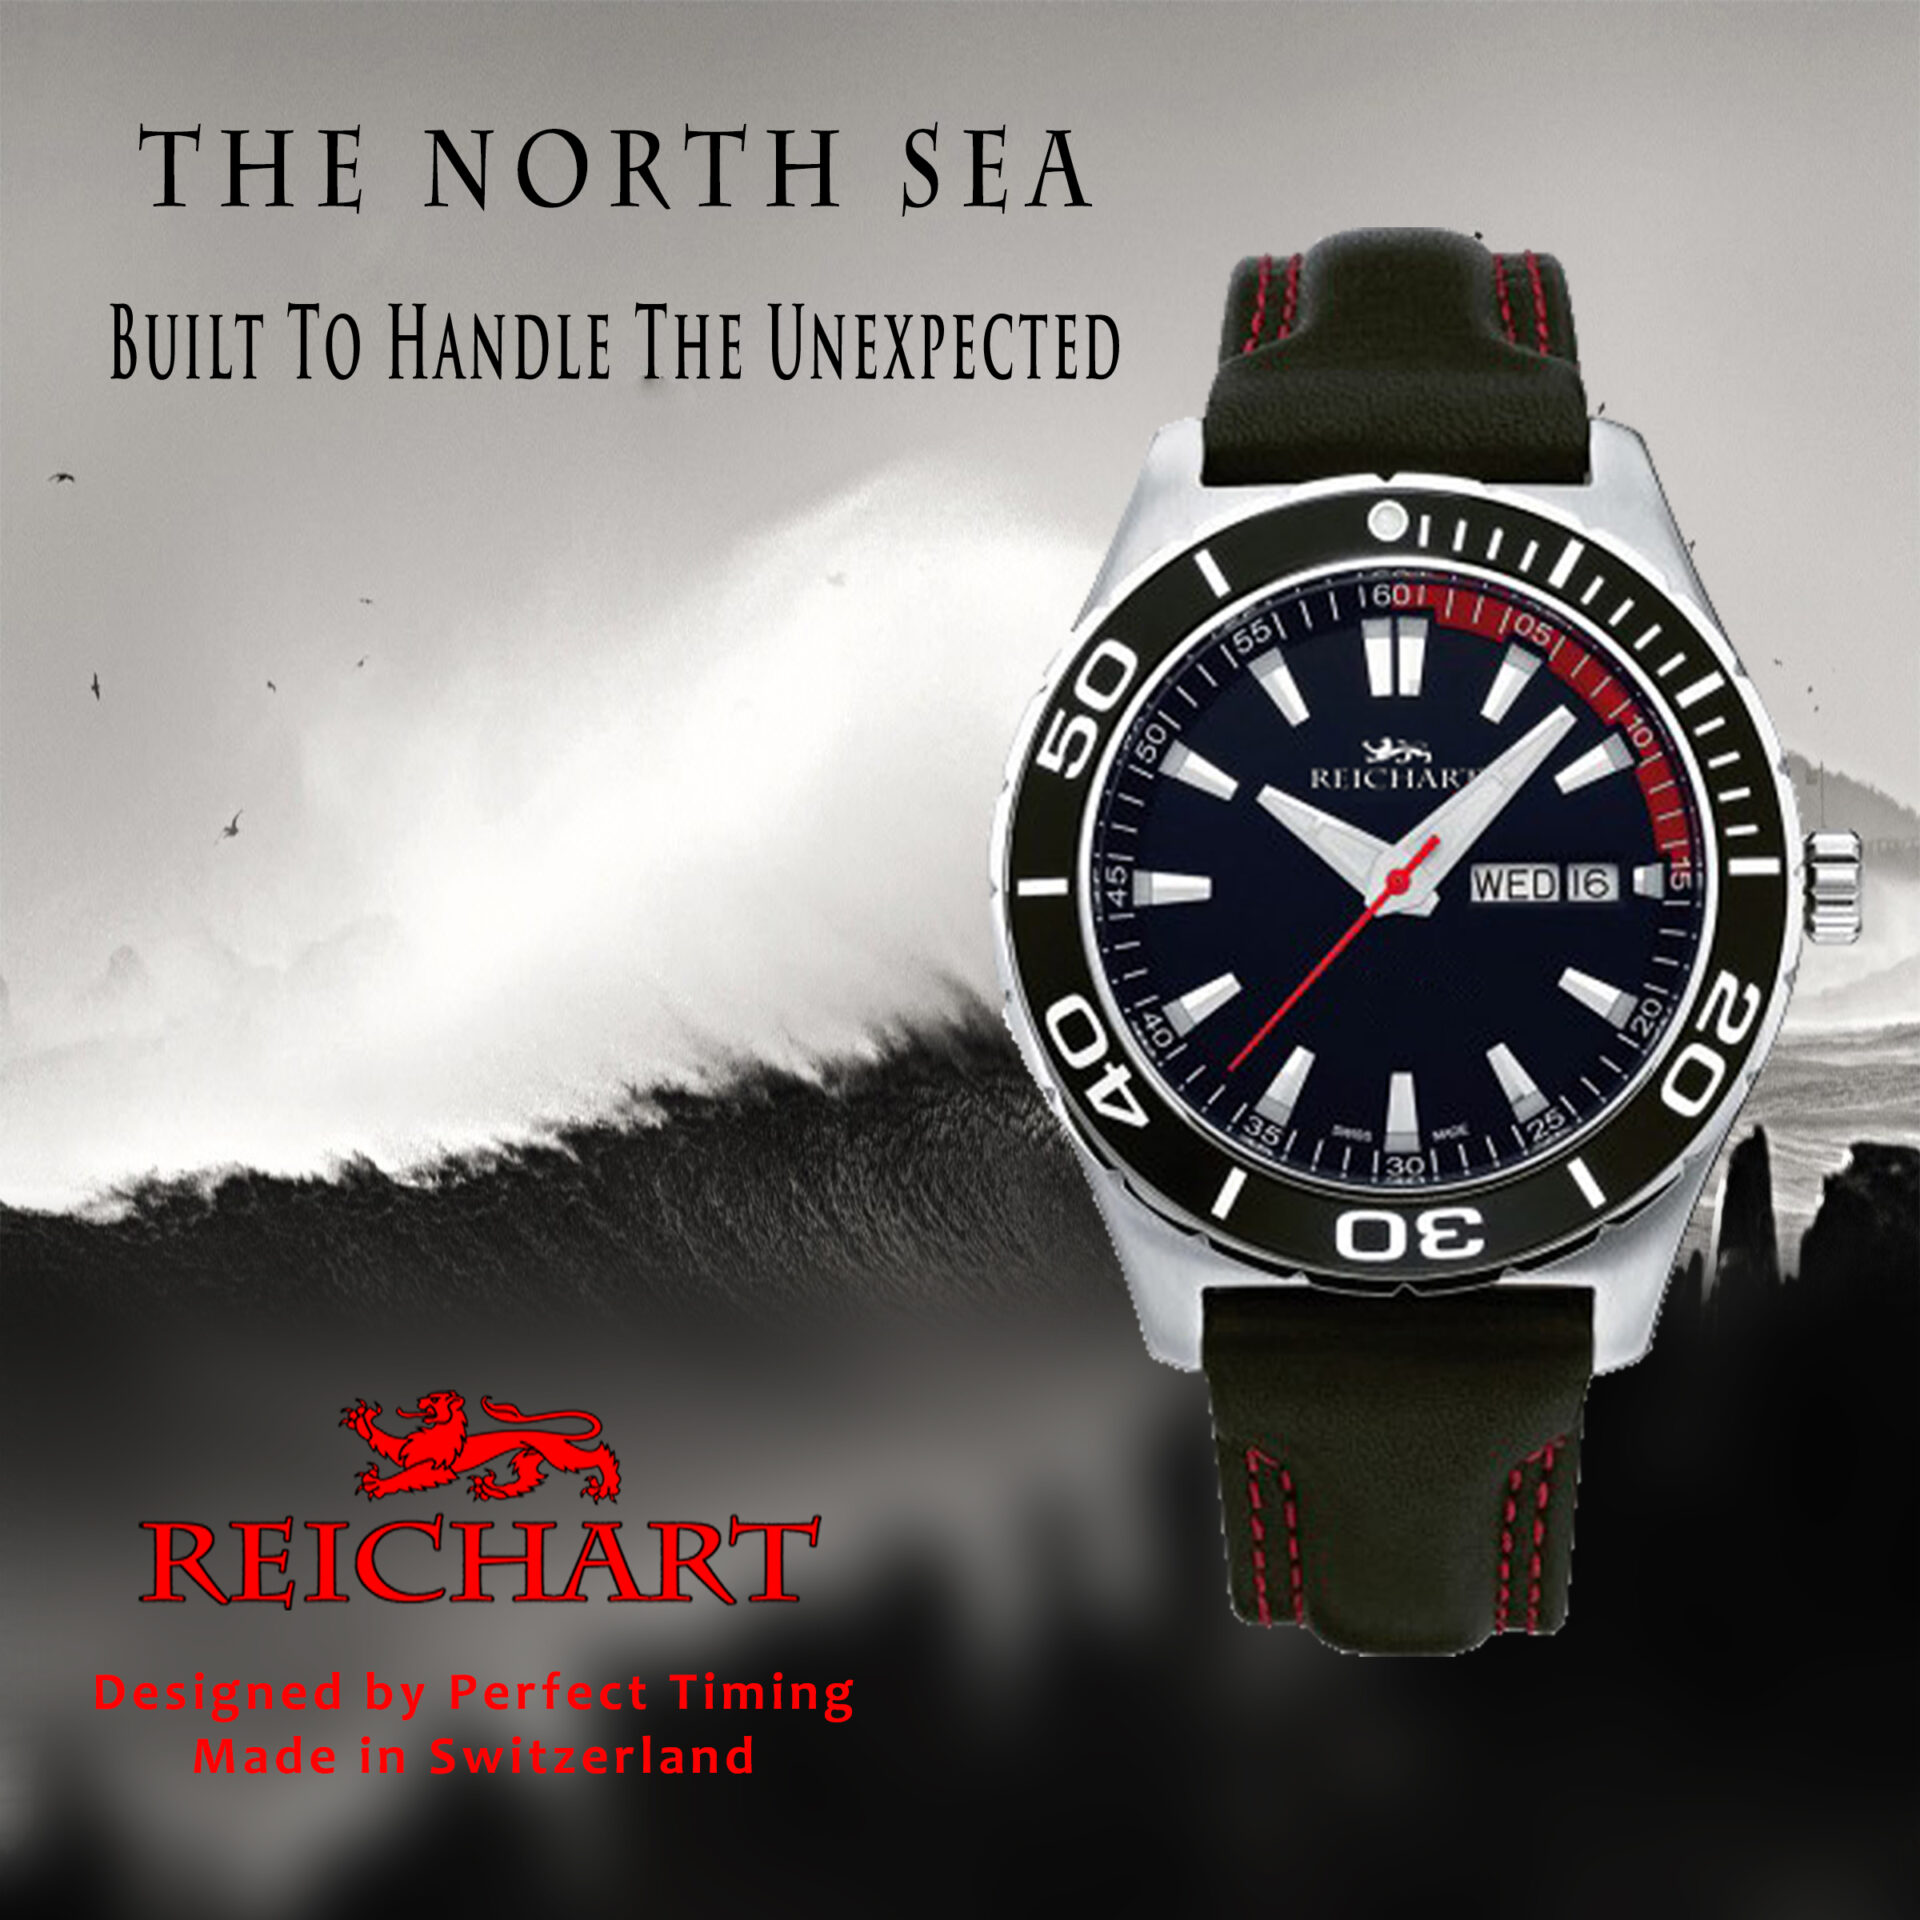 The North Sea by Reichart Watch